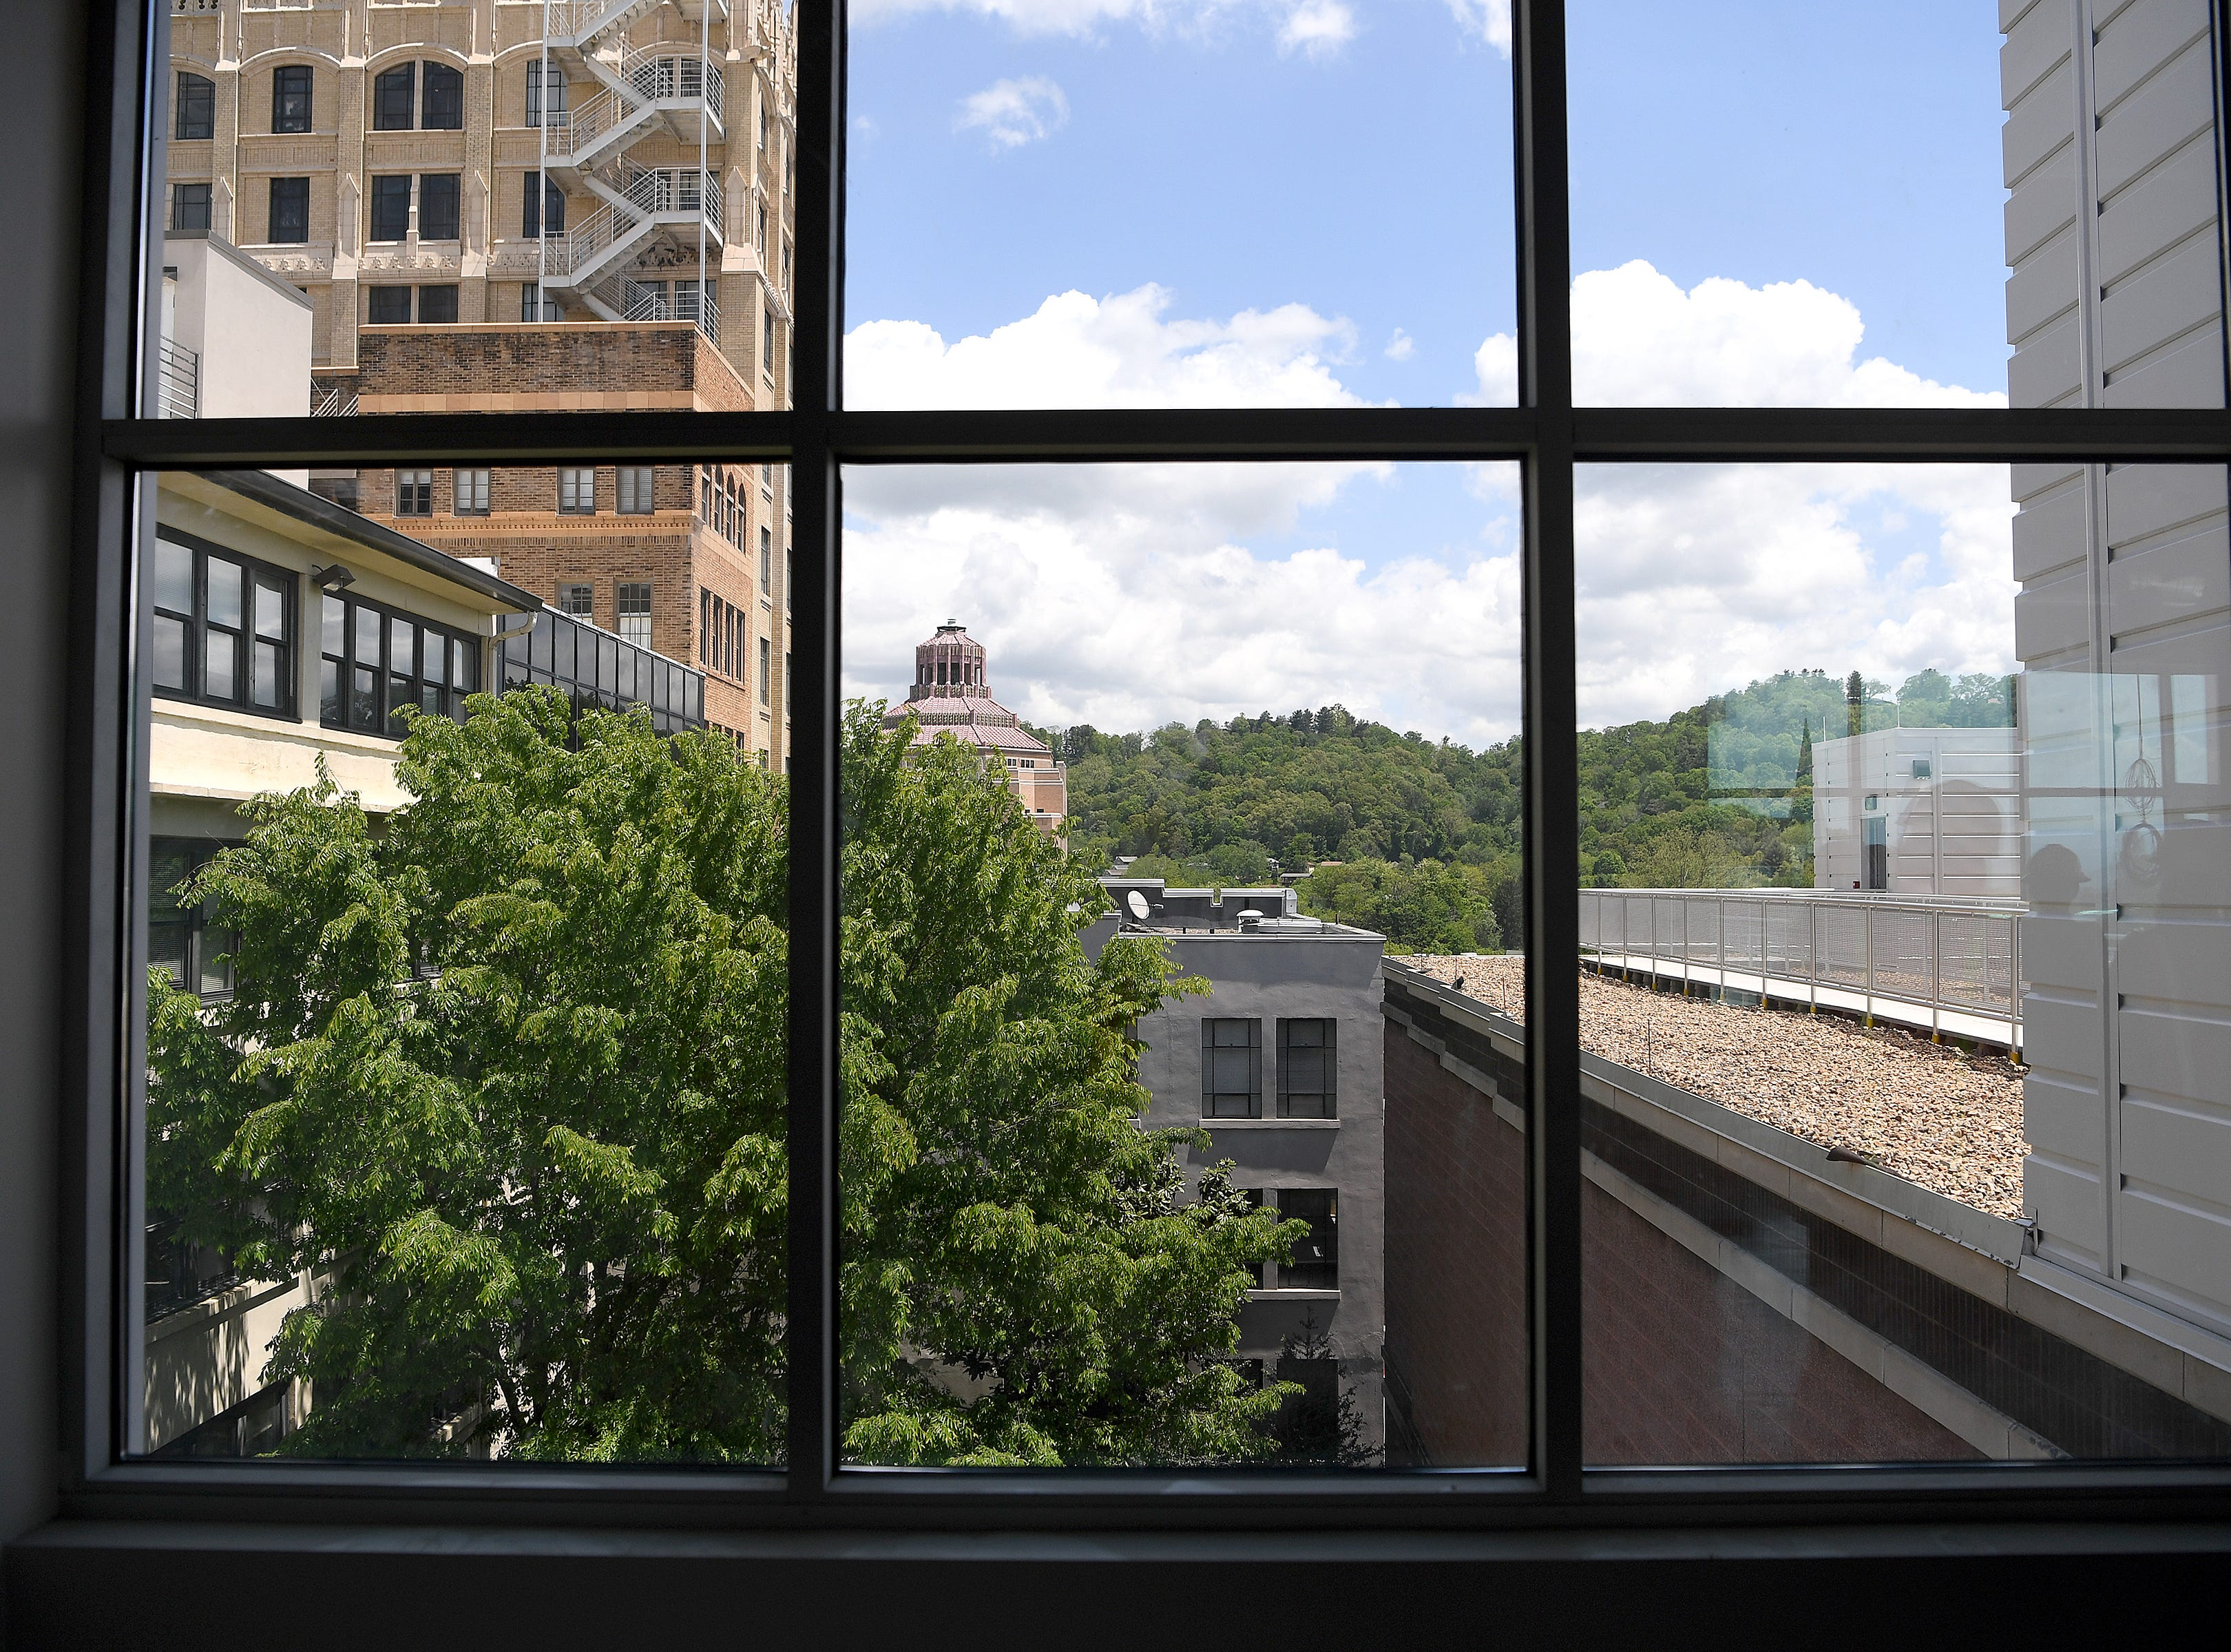 A new rooftop cafe will be opening during museum hours at the Asheville Art Museum when the building opens this summer.